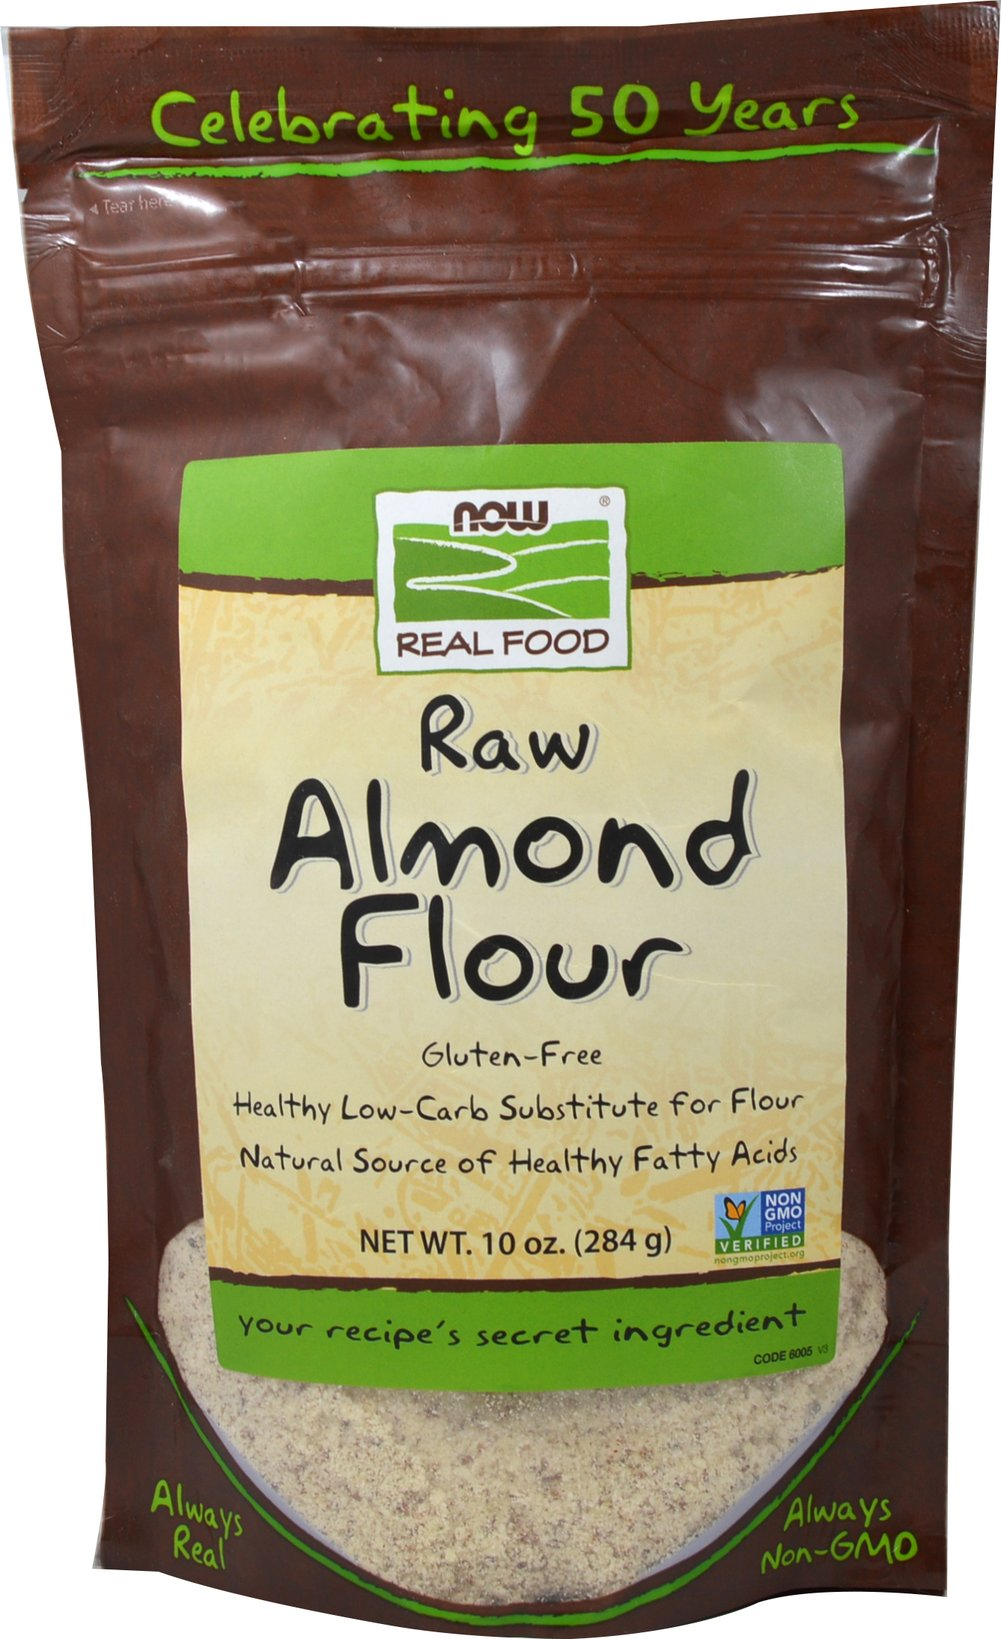 Almond Flour <p><strong>From the Manufacturer: </strong></p><p>Now Foods Almond Flour is an unblanched, gluten-free flour that is an excellent low-carb substitute for other flours used in baking, either wholly or in part. With Almond Flour, you can add color, texture, richness, and flavor to your baked goods as well as everyday meals.</p> 10 oz Bag  $9.89